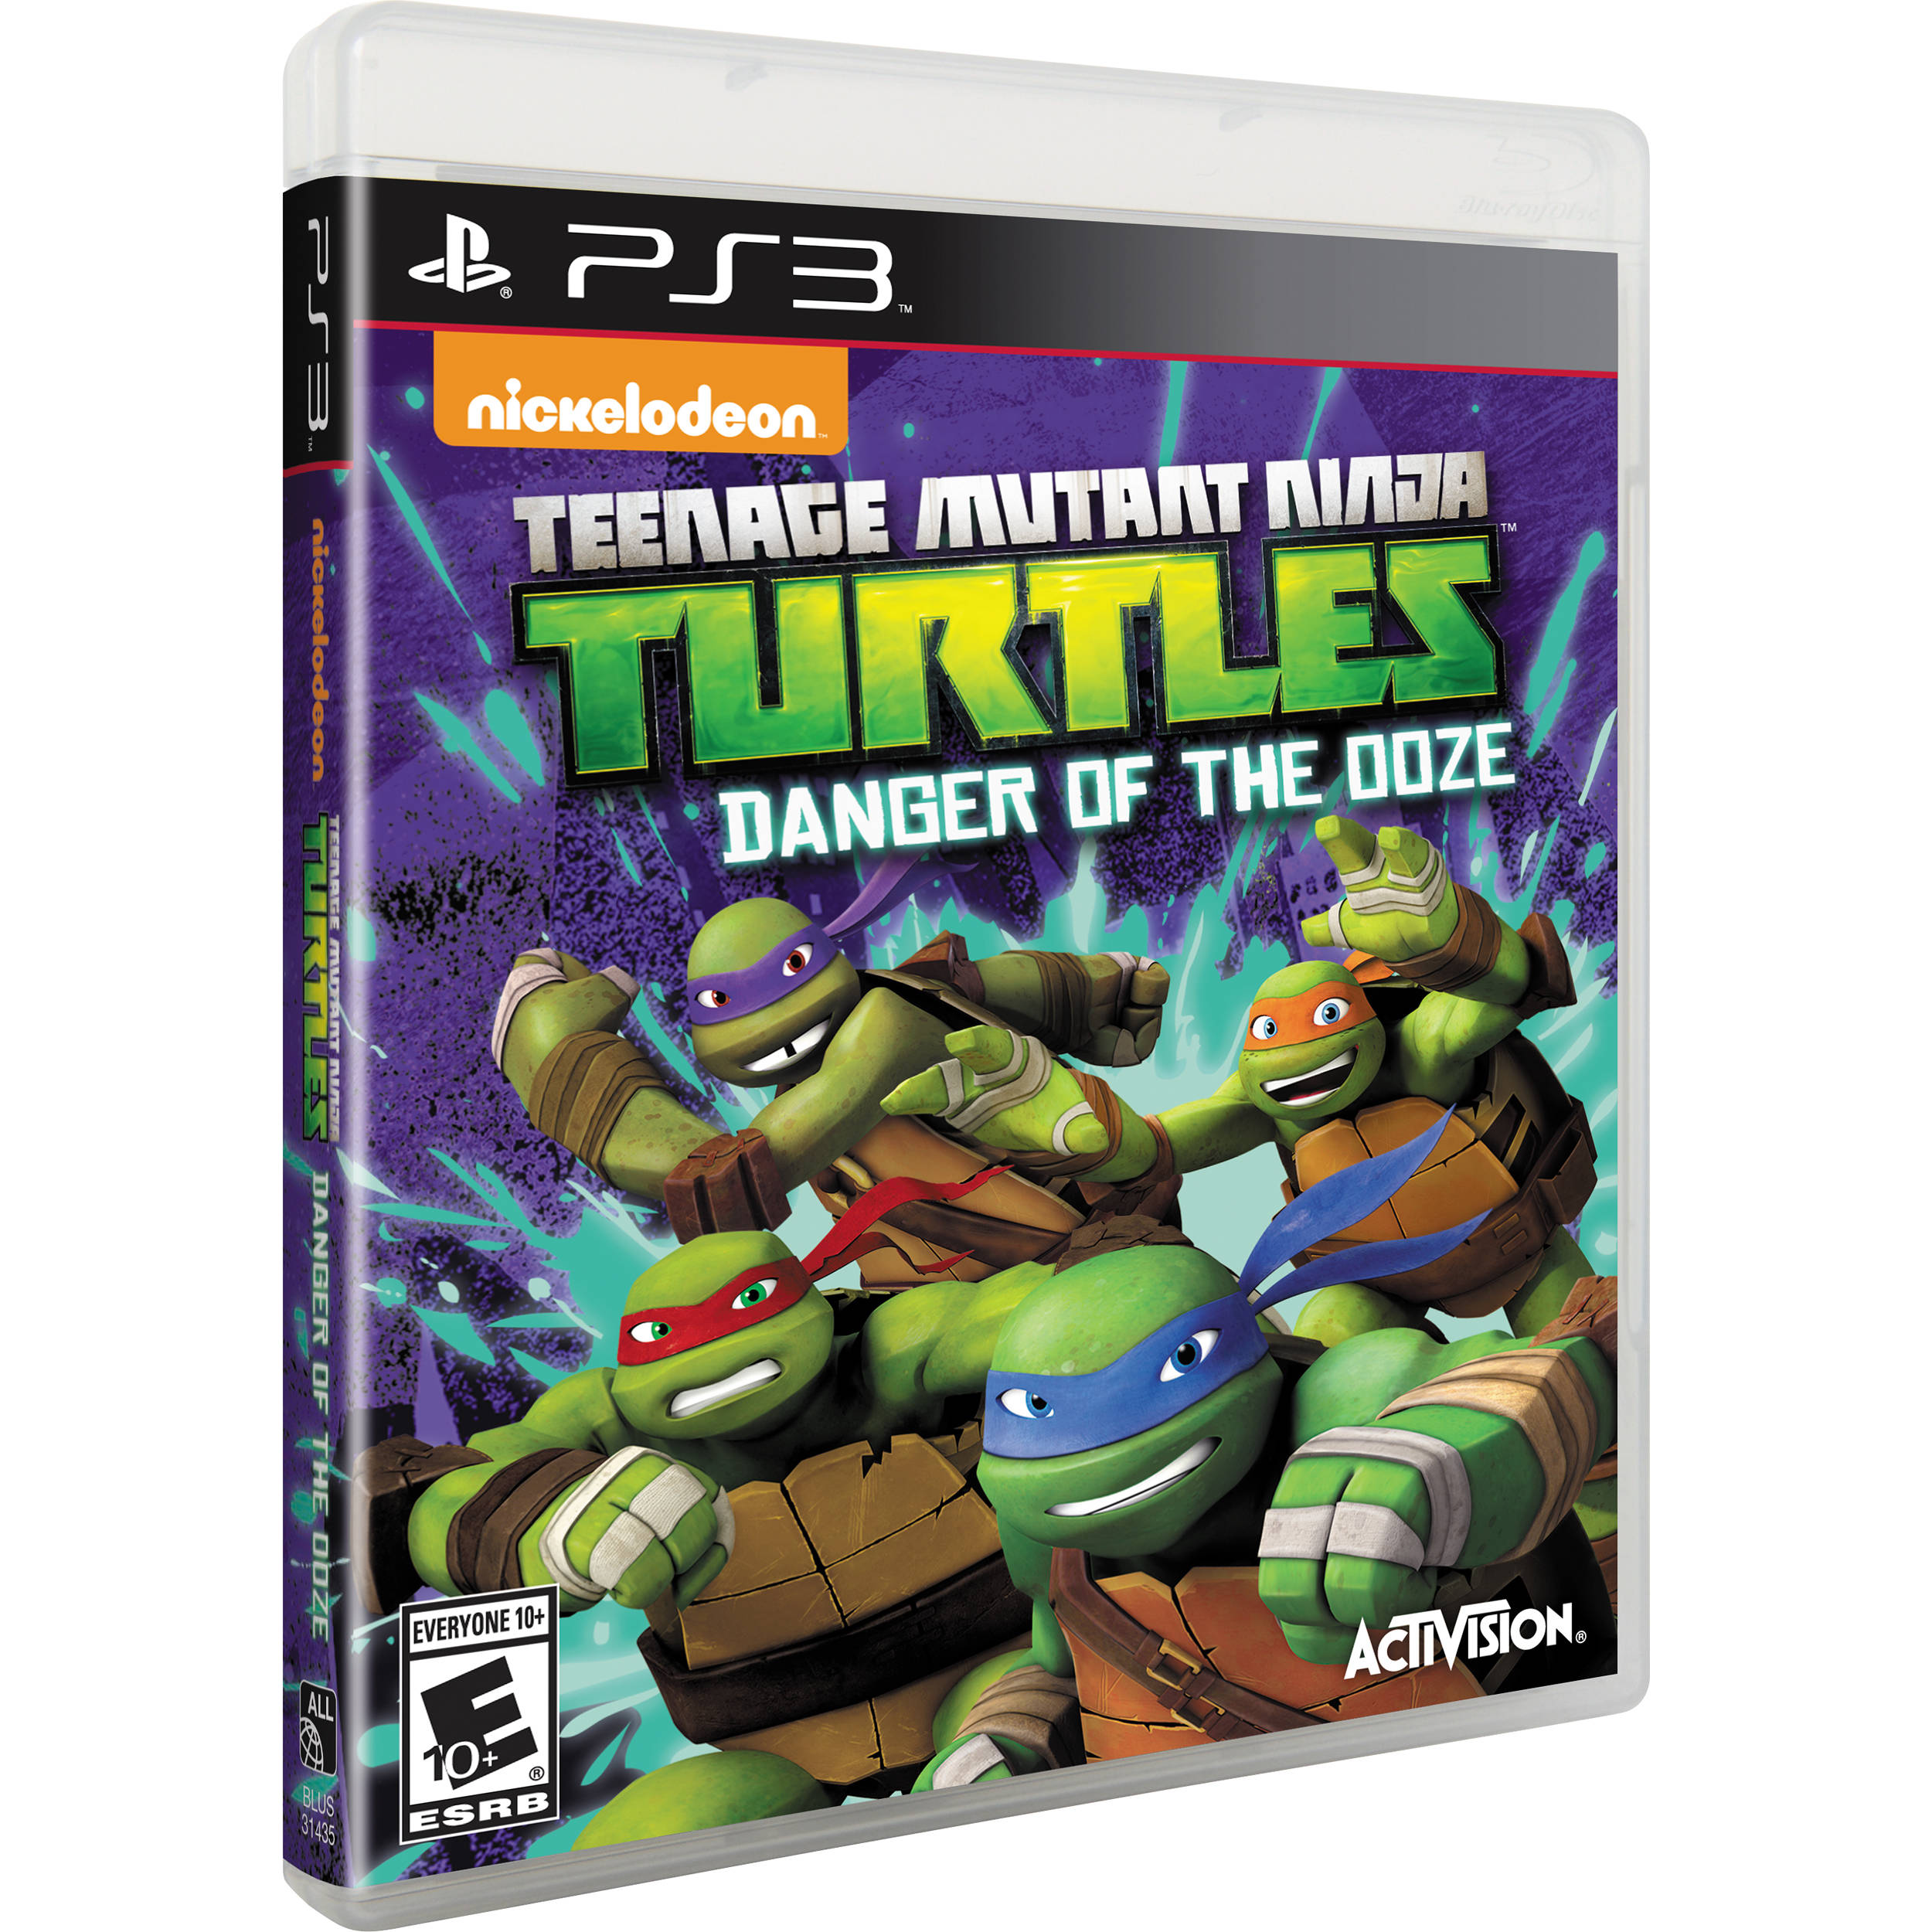 Kết quả hình ảnh cho eenage Mutant Ninja Turtles - Danger of the Ooze cover ps3